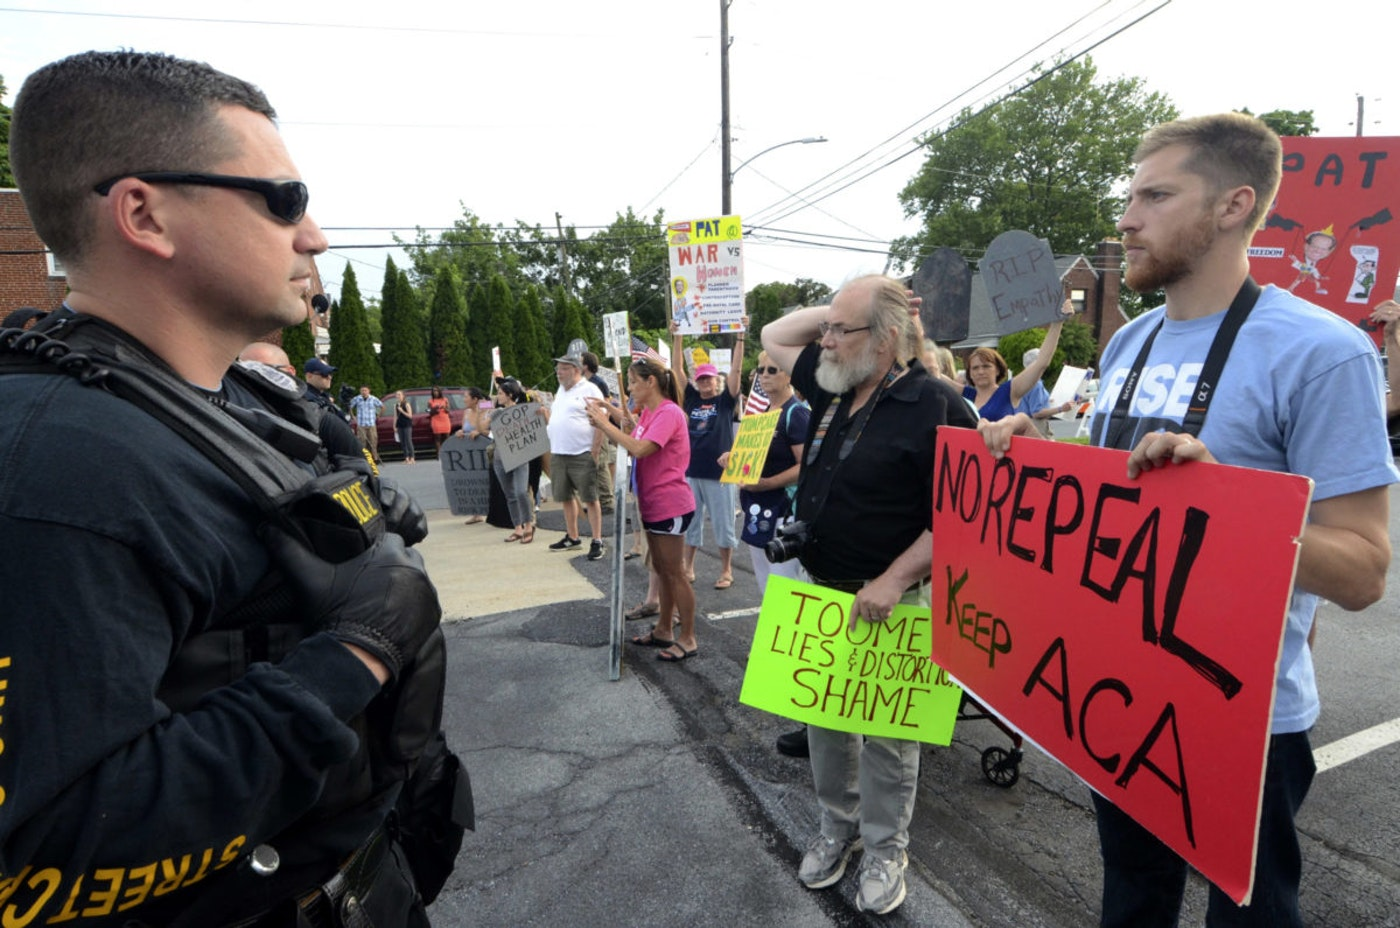 Watched by police, protesters await the arrival of Pennsylvania's US Sen. Pat Toomey outside the studios of WHTM-TV, Wednesday, July 5, 2017 in Harrisburg, Pa. (AP Photo/Marc Levy)